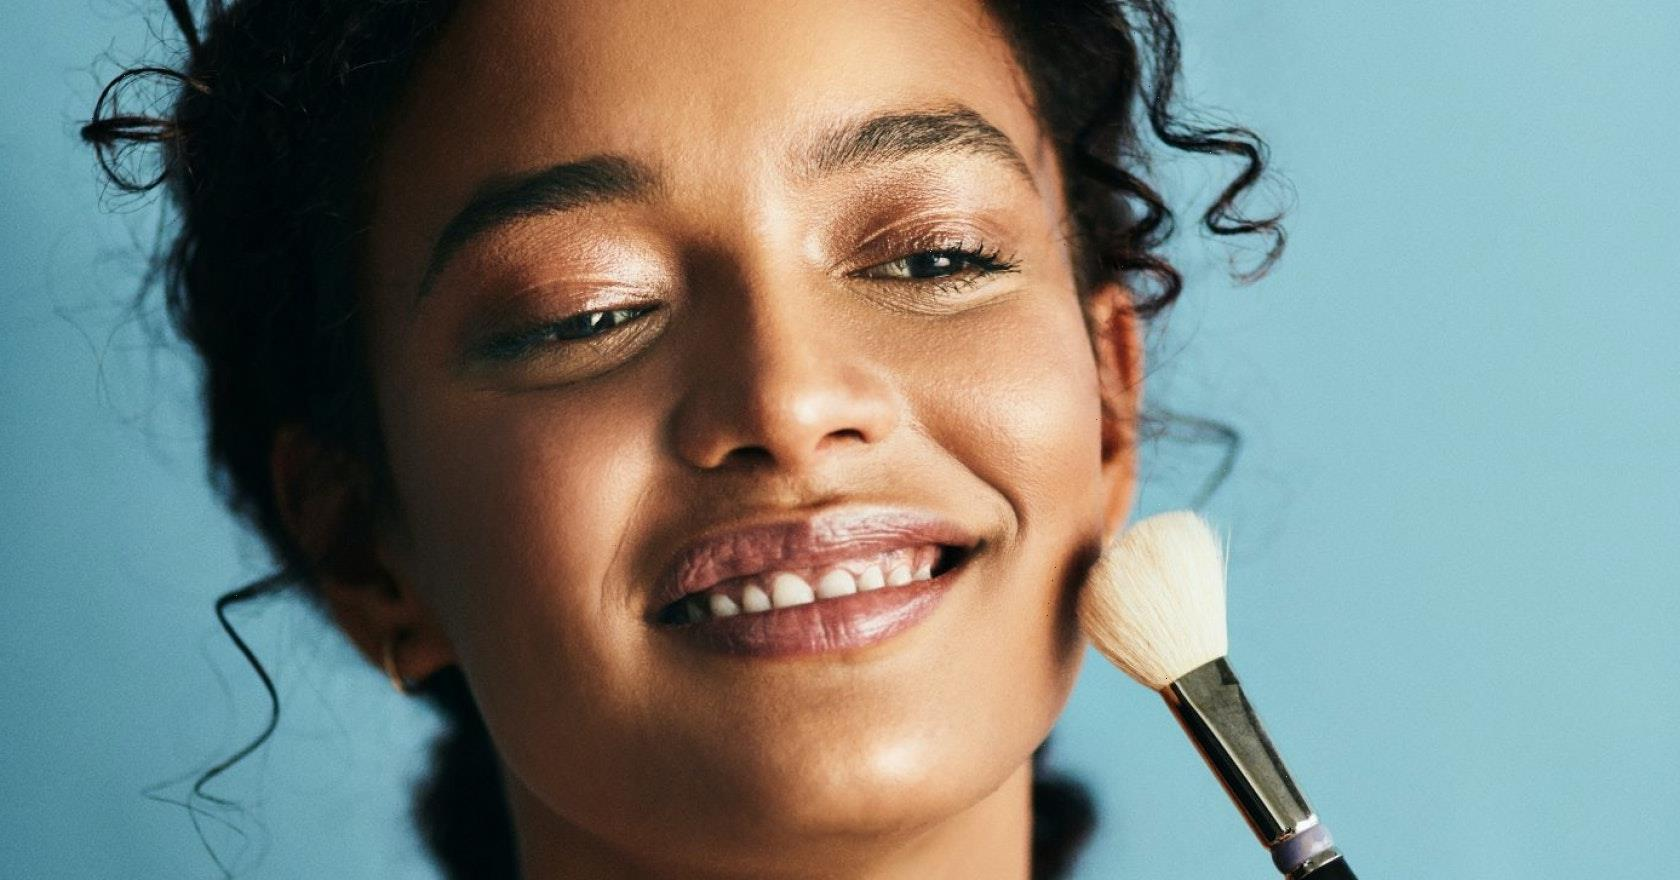 Make-up artists swear by this one product for ultra-glowy winter skin